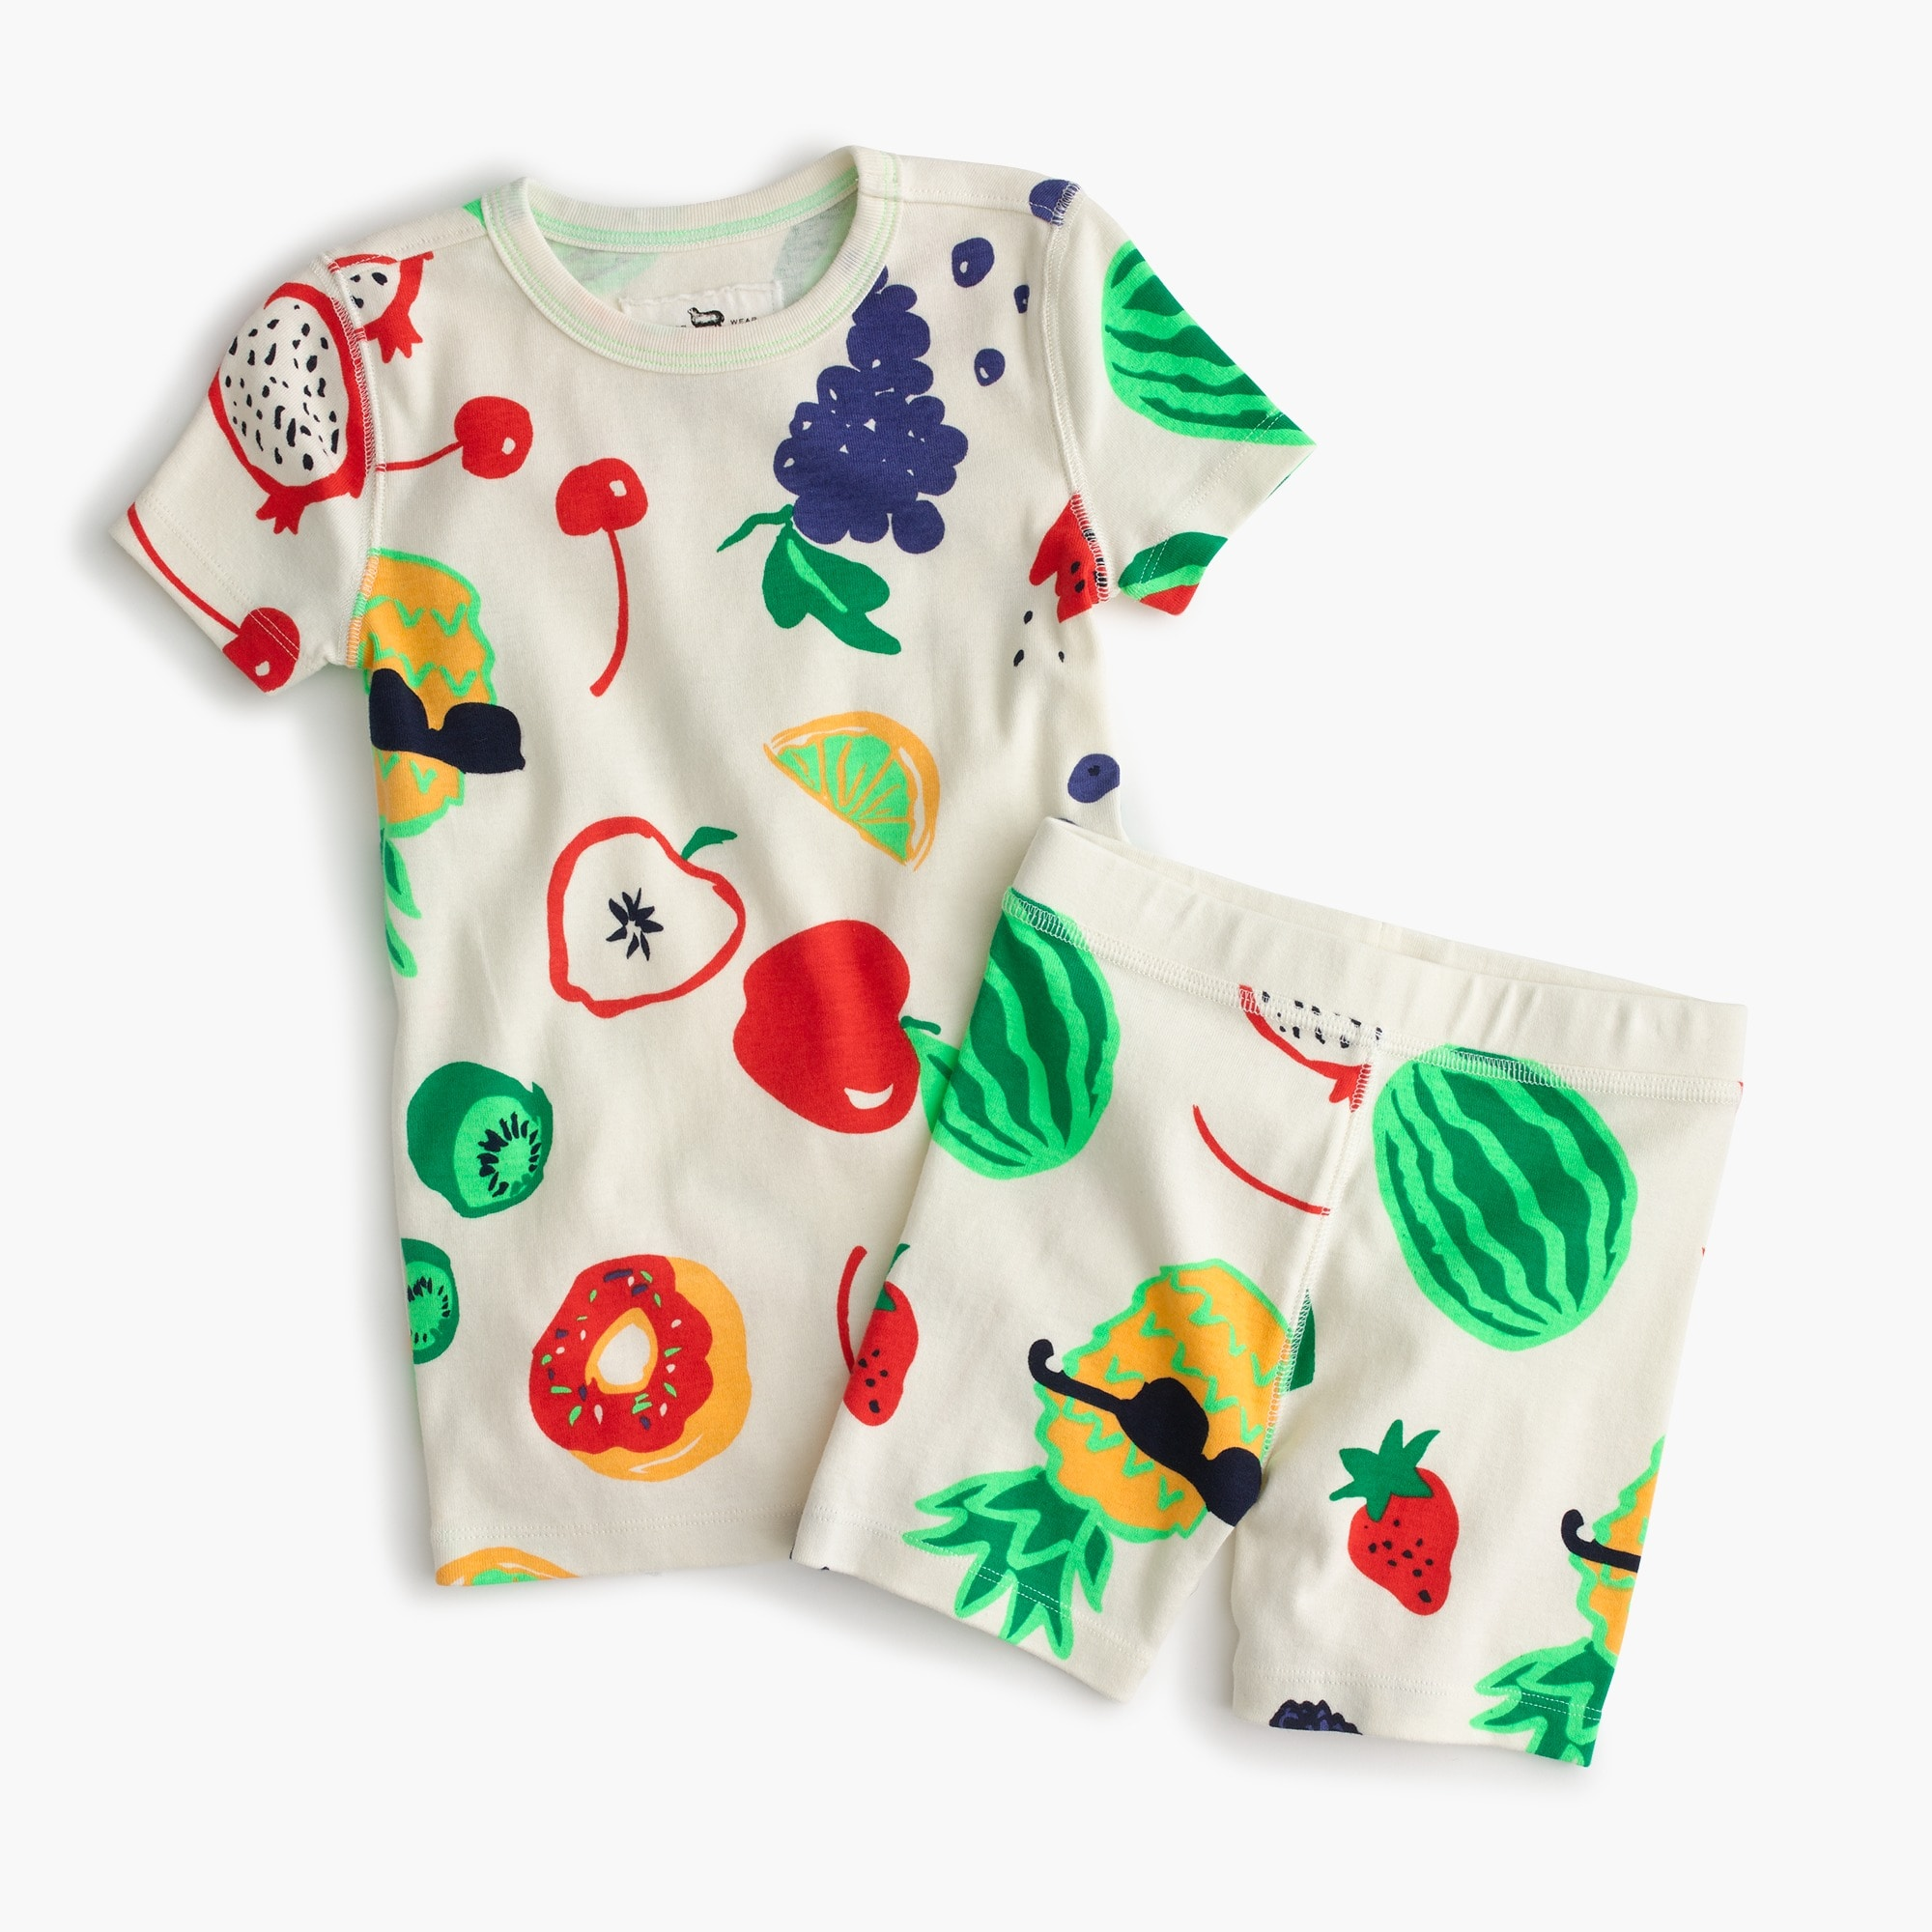 Girls' short-sleeve pajama set in fruits girl new arrivals c